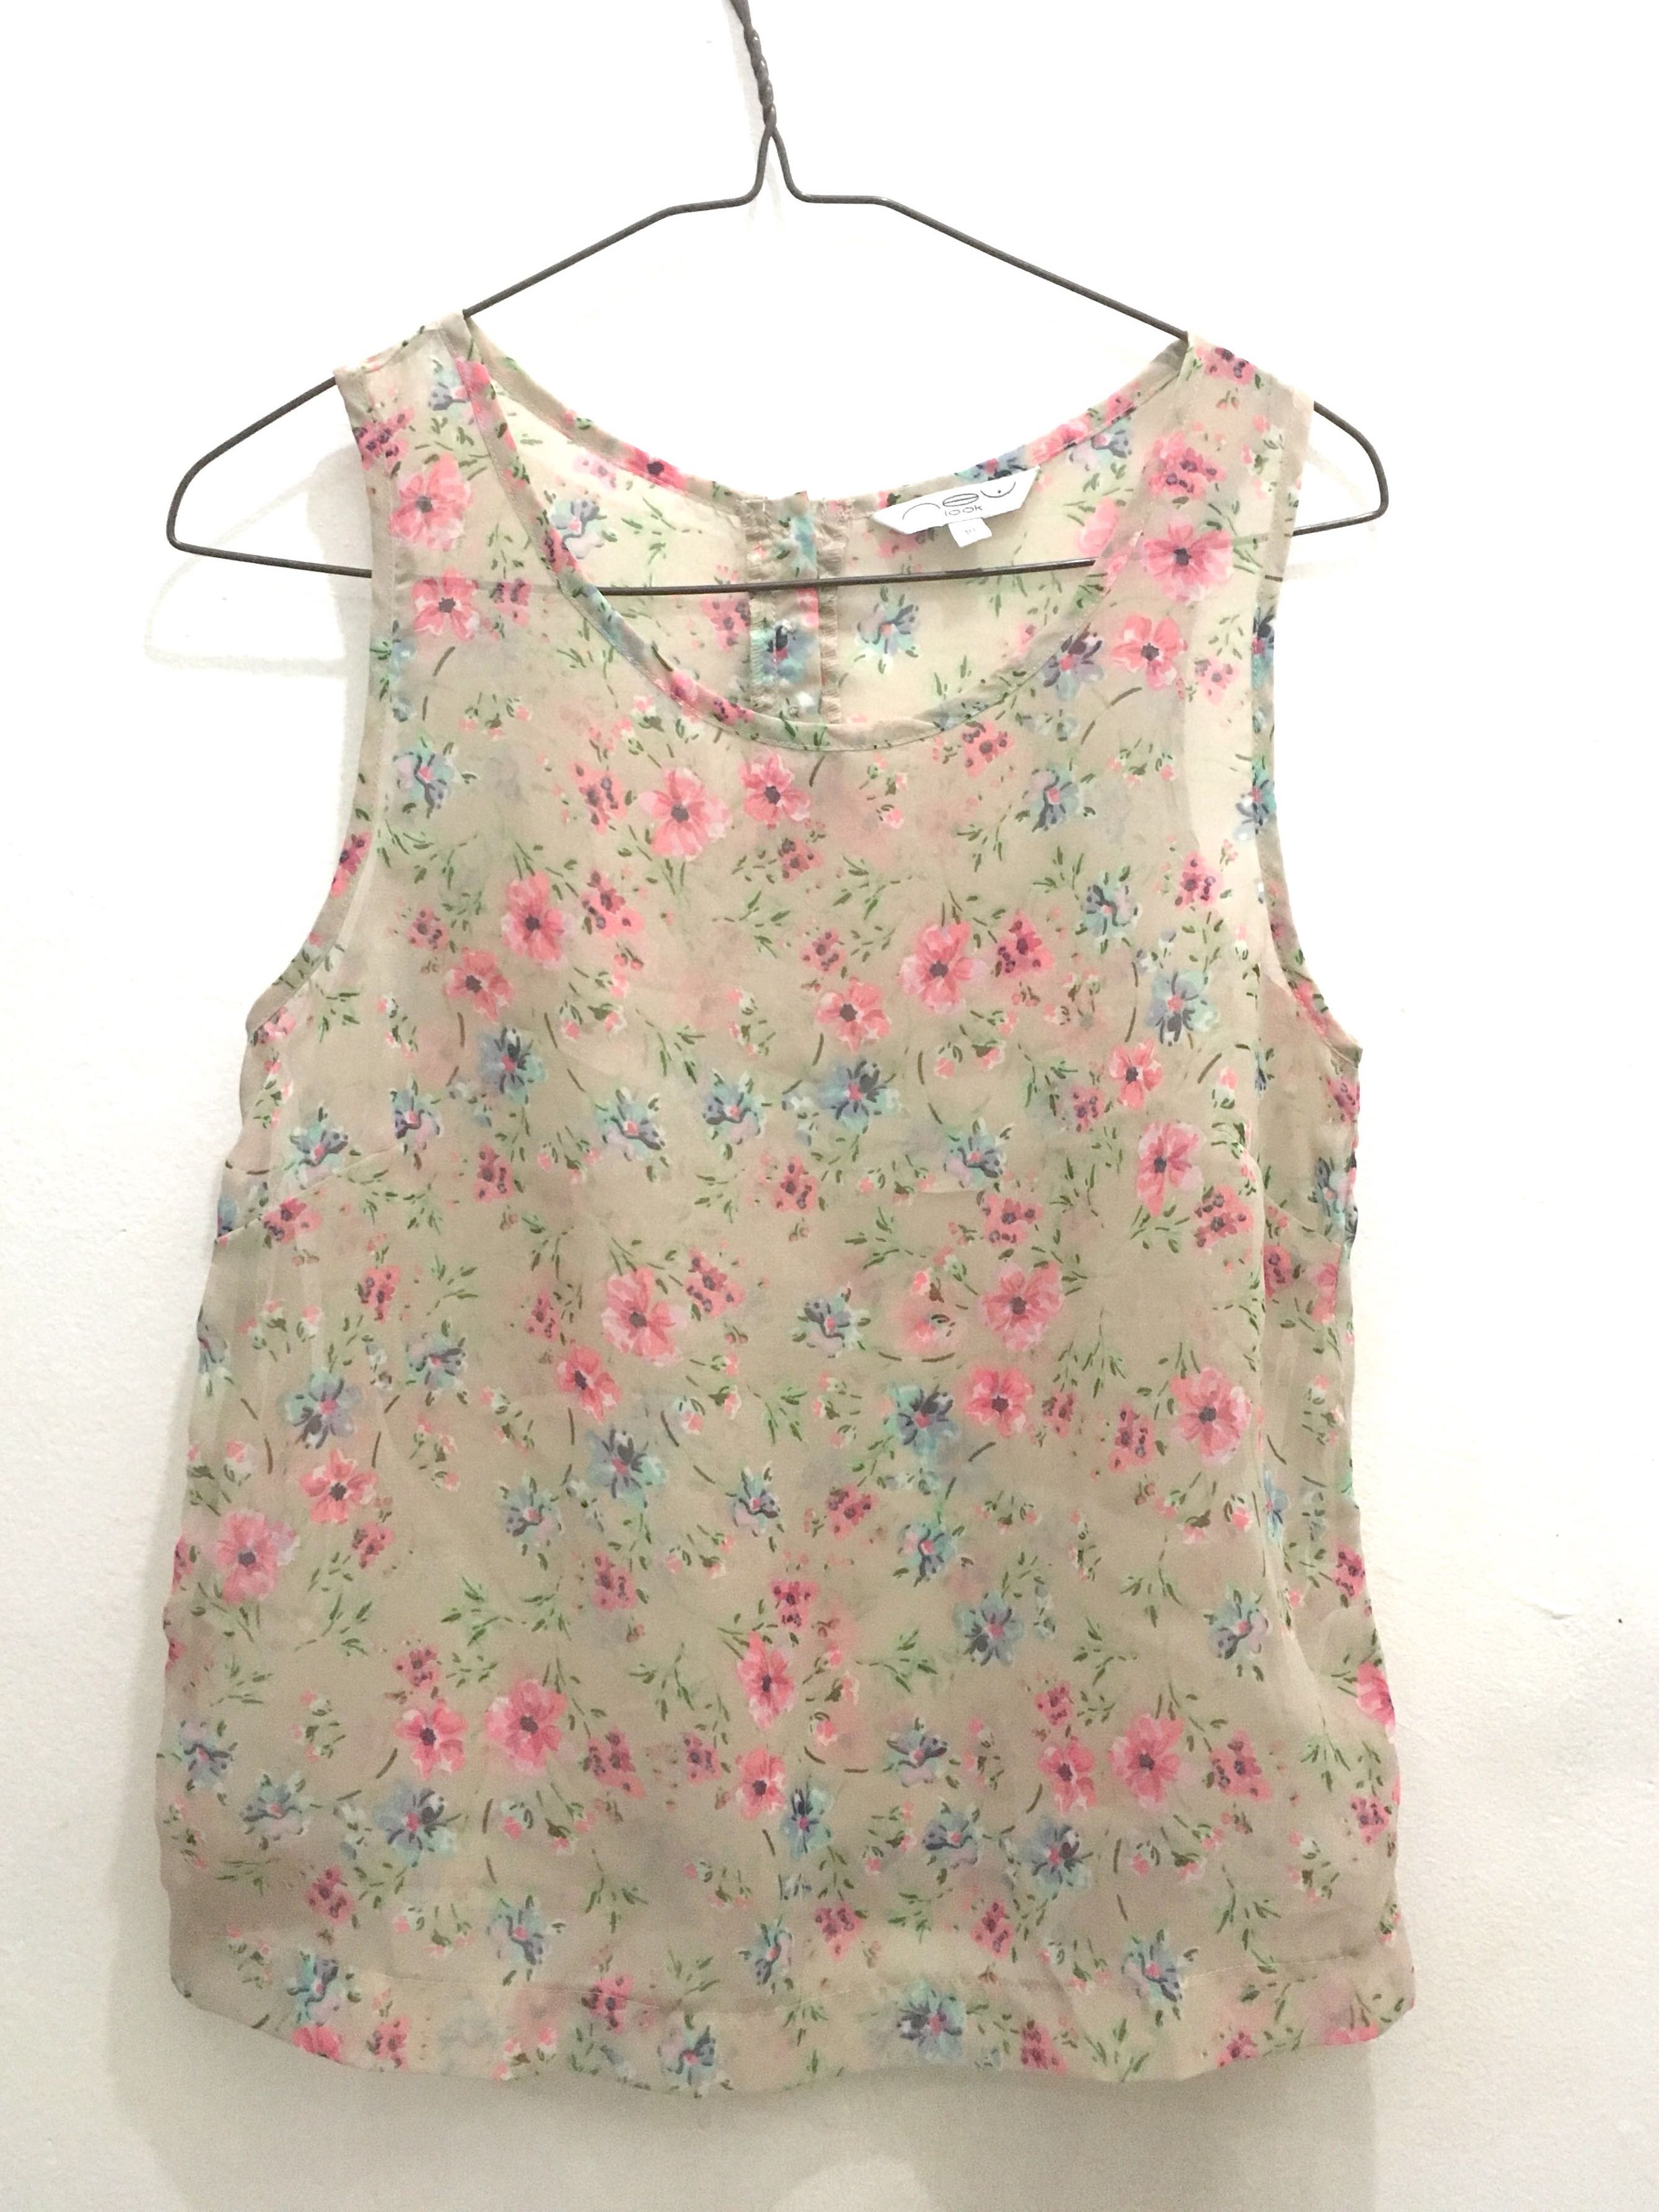 Floral See-through Top, Women's Fashion, Women's Clothes, Tops on Carousell